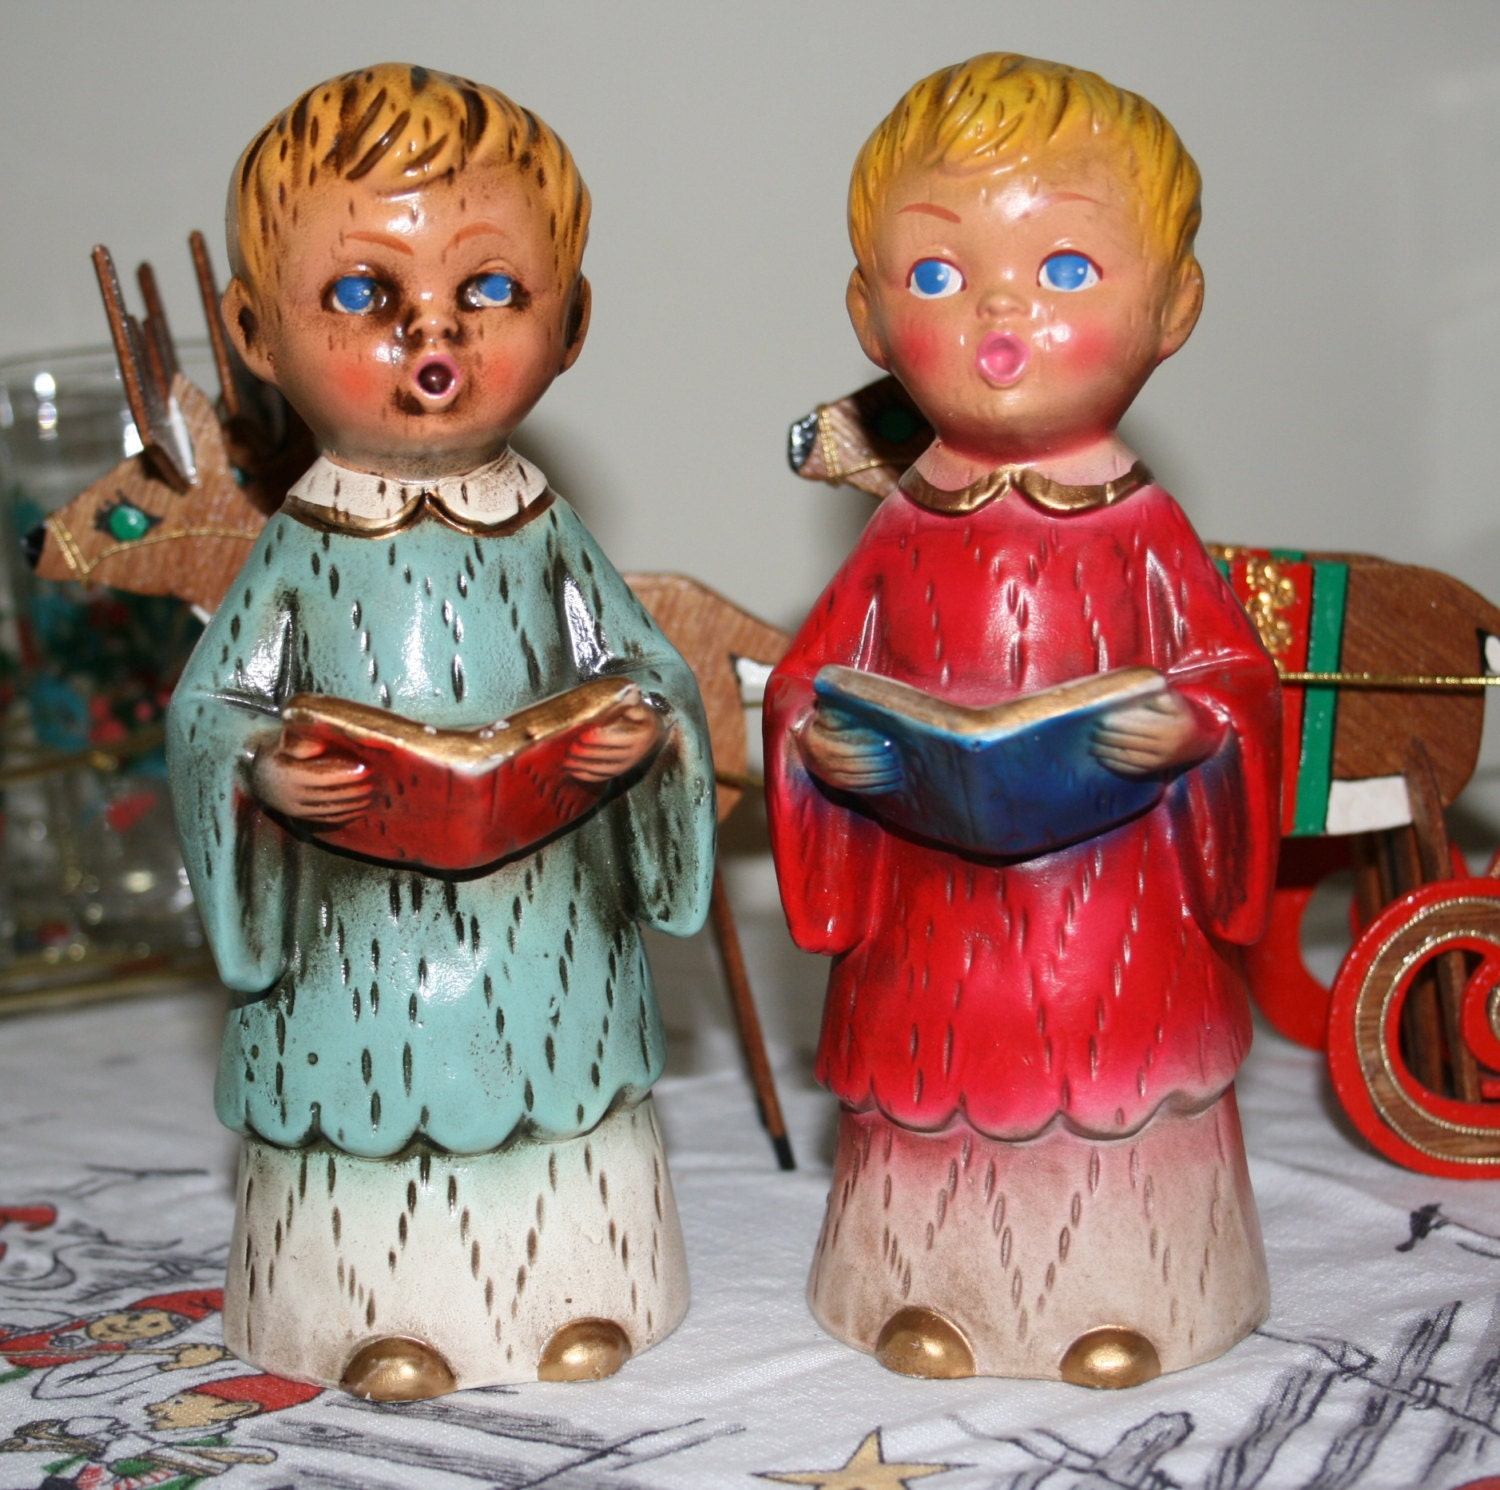 Singing Carolers Candleholders Figurines Vintage By: Vintage Choir Boys Carolers Figurines Pair Chalkware Plaster